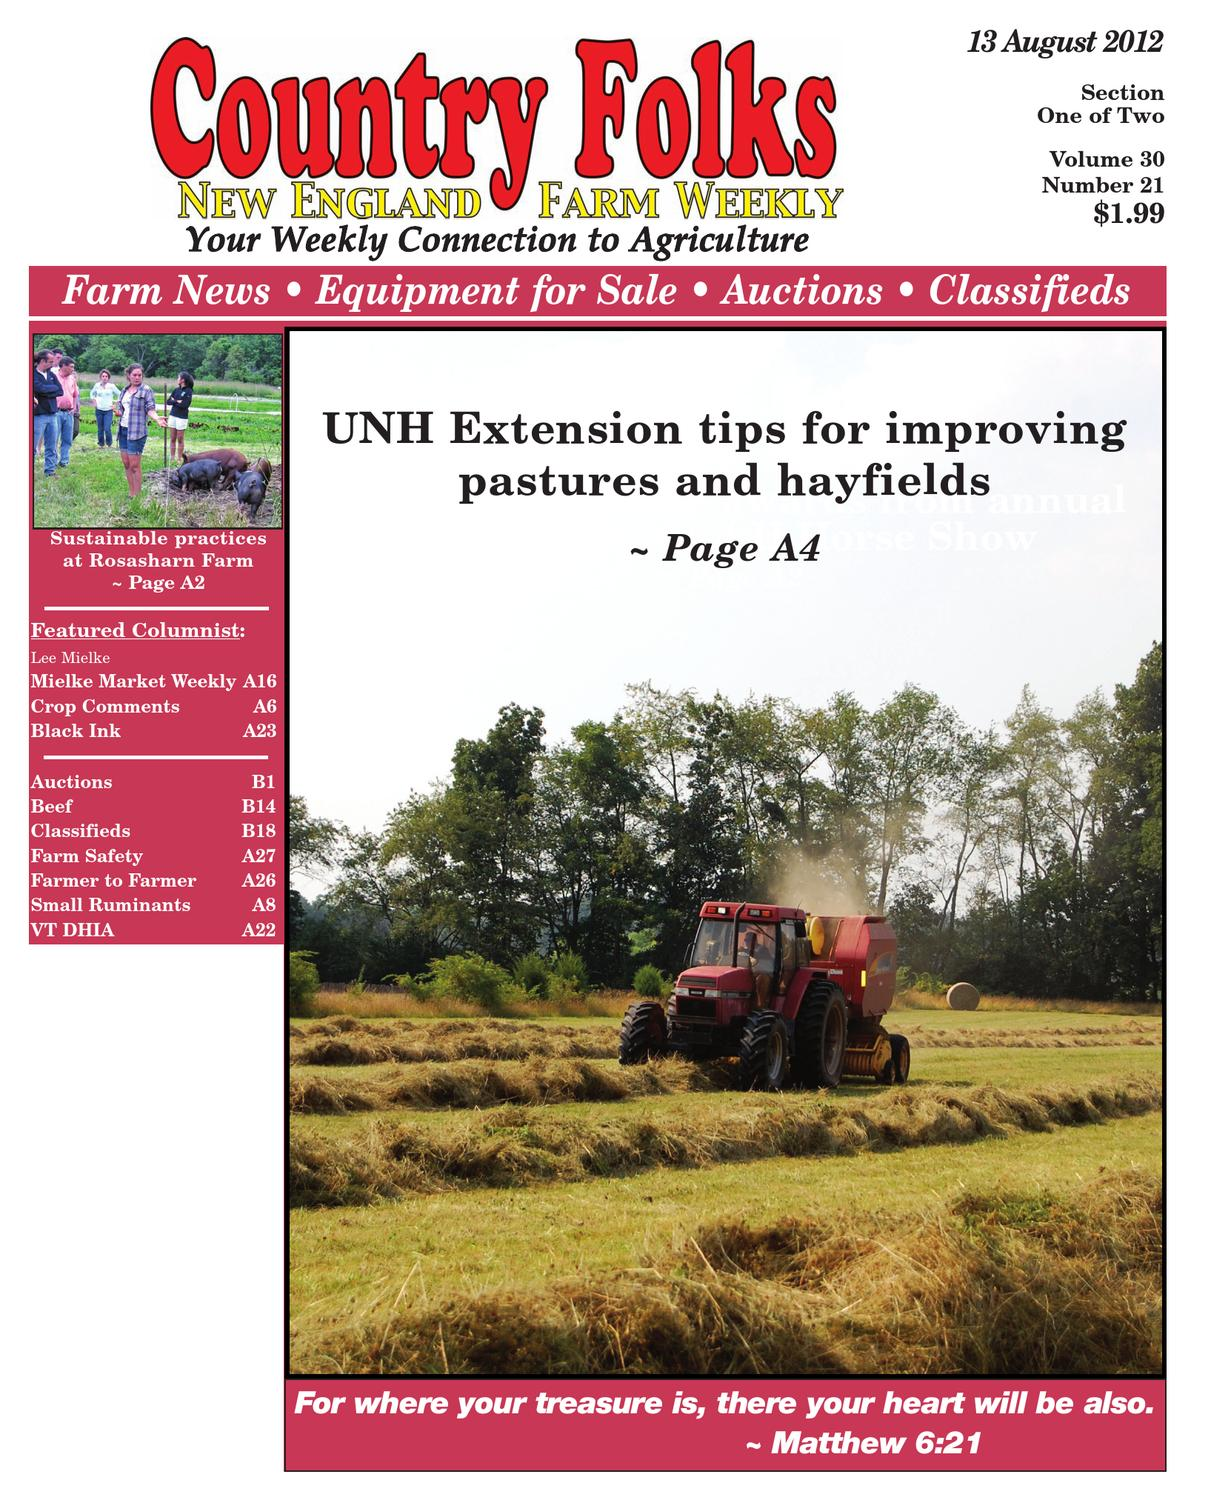 Coutry Folks New England 8 13 12 by Lee Publications - issuu